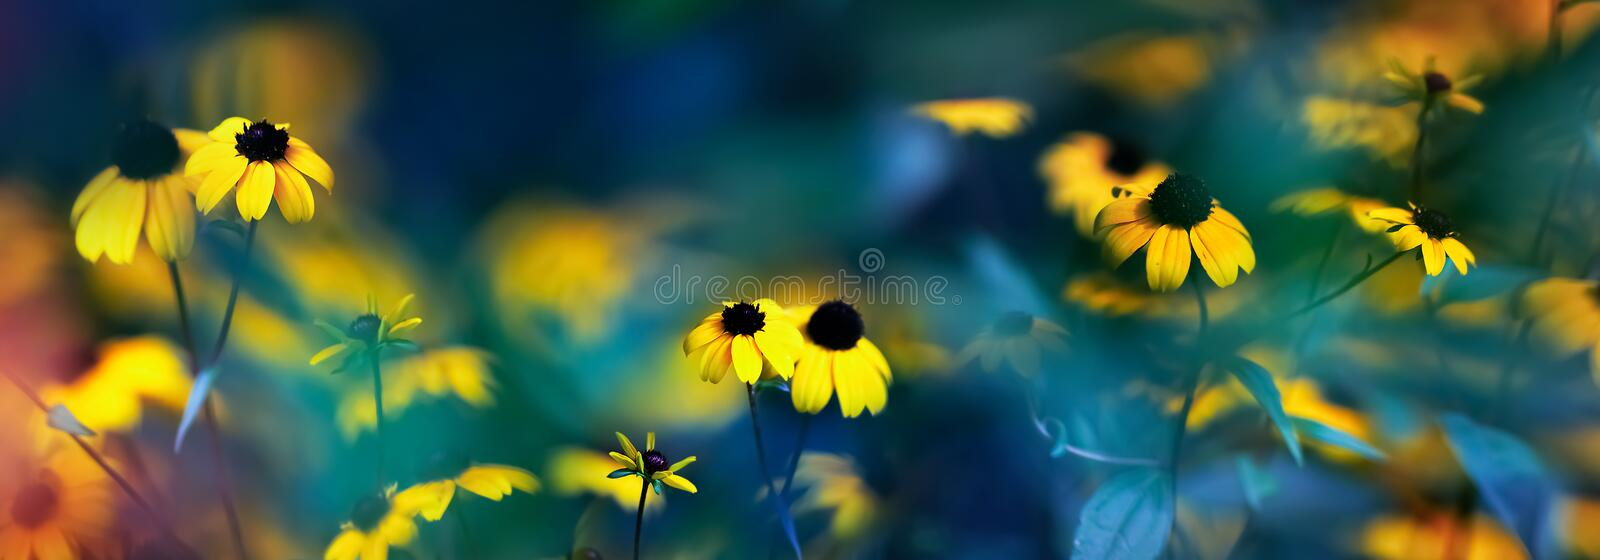 Small yellow bright summer flowers on a background of blue and green foliage in a fairy garden. Macro artistic image. royalty free stock image